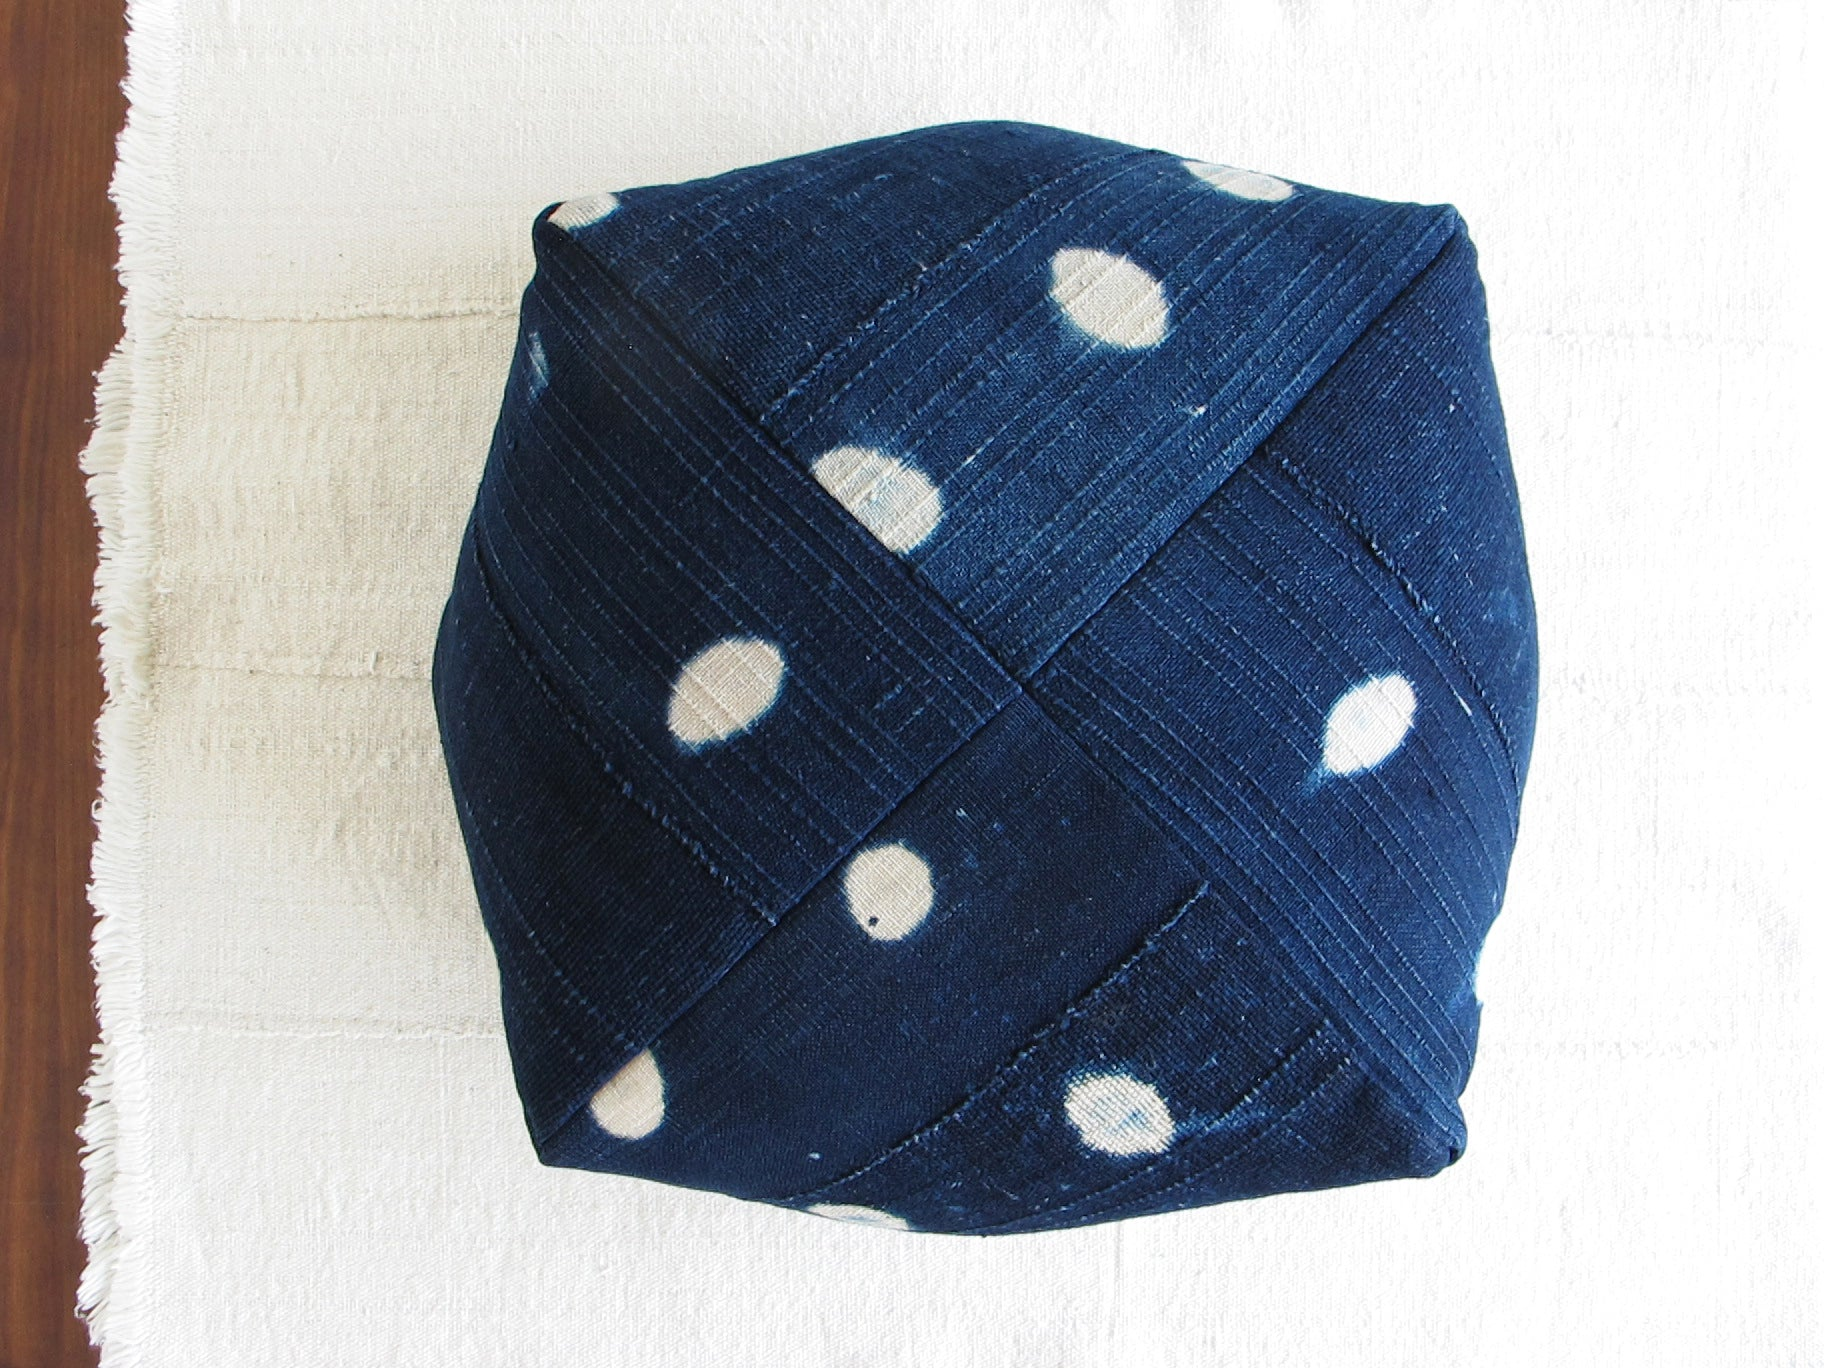 DUMPLING CUSHION in indigo dots, large